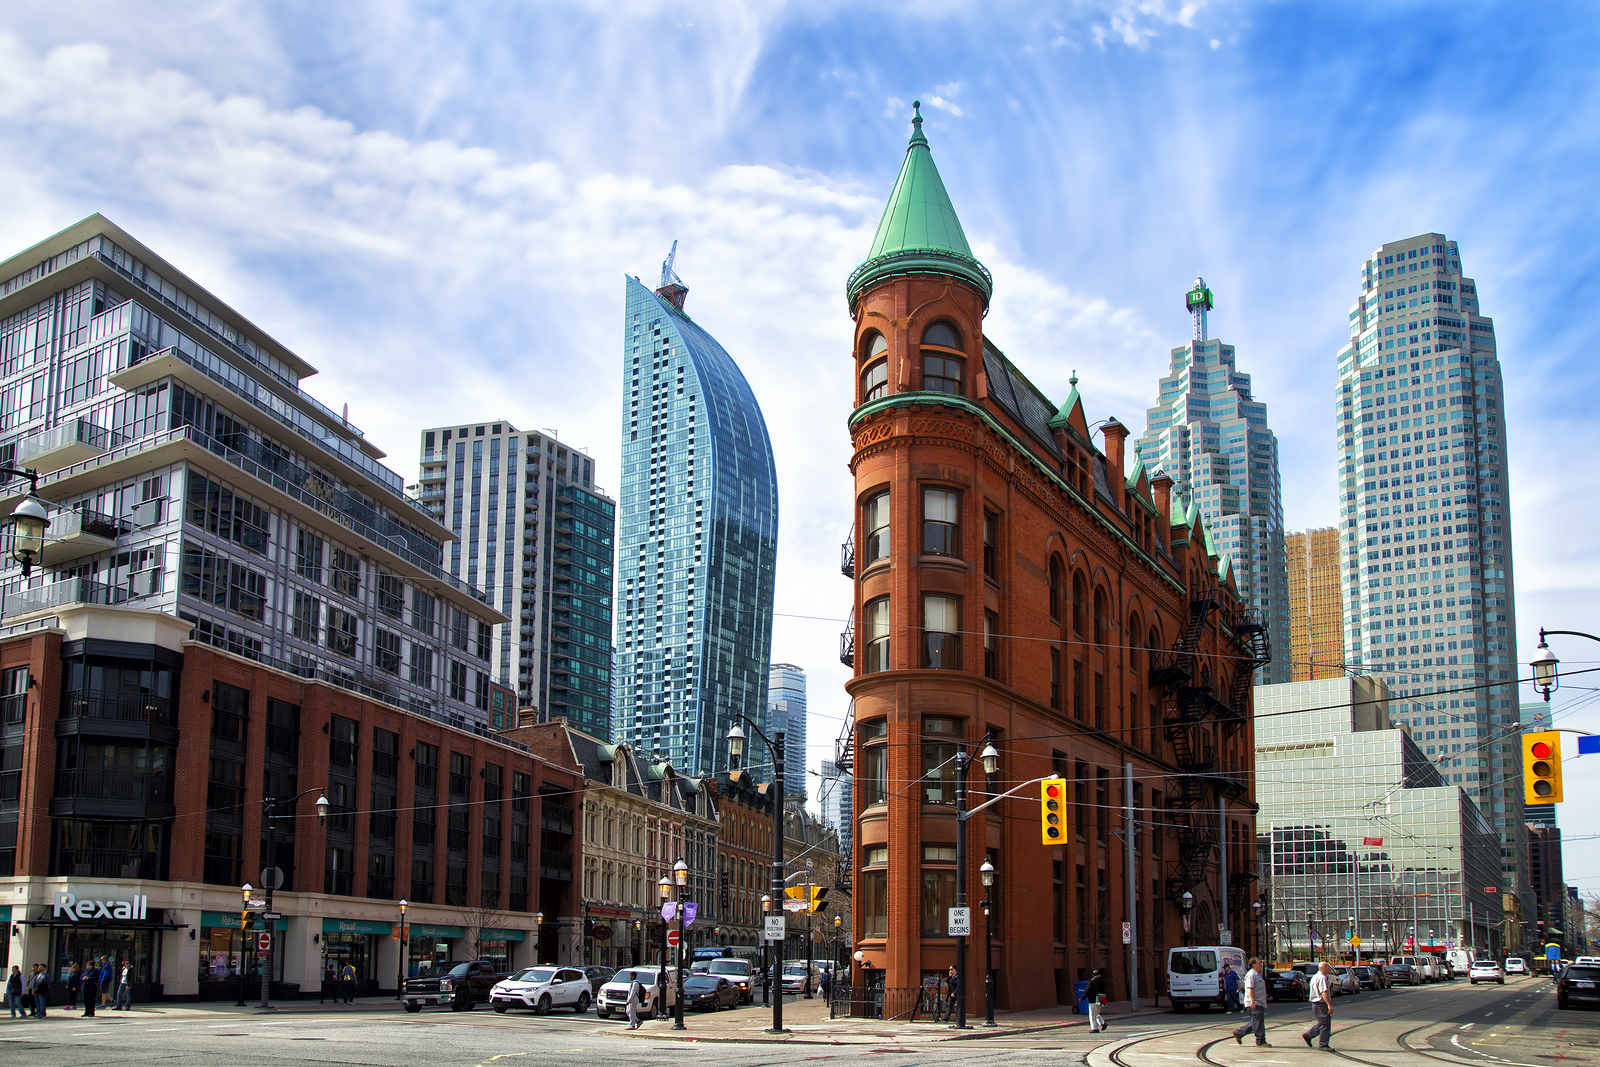 The red-brick Gooderham Building